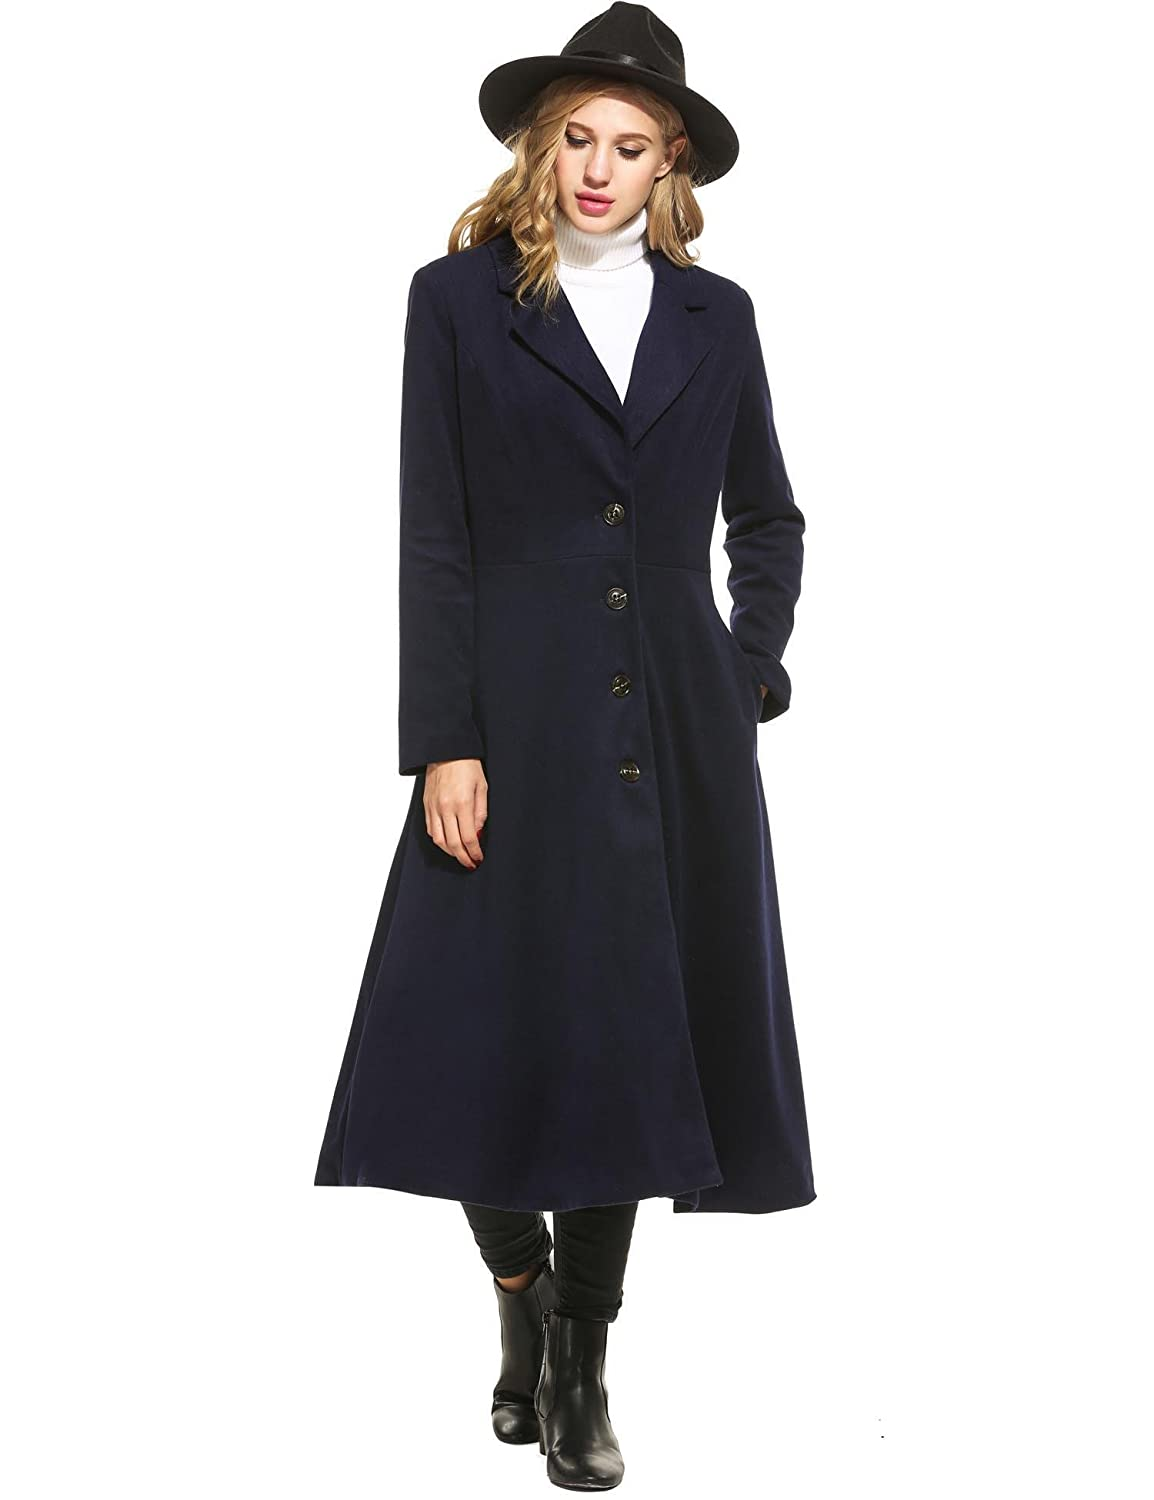 70s Outfits – 70s Style Ideas for Women Mofavor Women Long Trench Coat Single Breasted Casual Swing Coat Overcoat Wool Pea Coat $55.89 AT vintagedancer.com